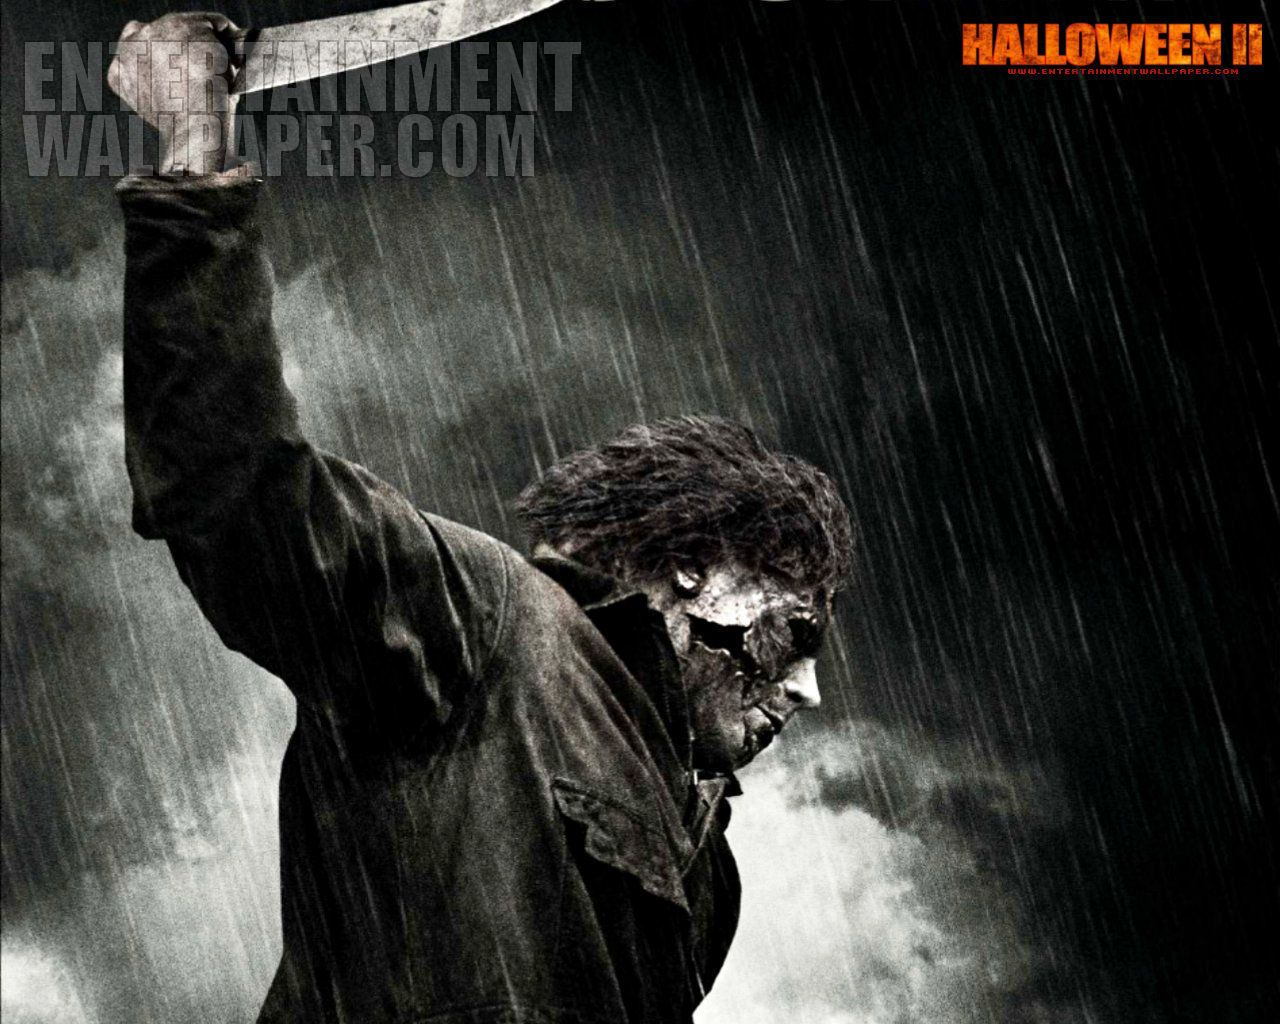 halloween wallpapers horror movies wallpaper - Halloween Scary Movies